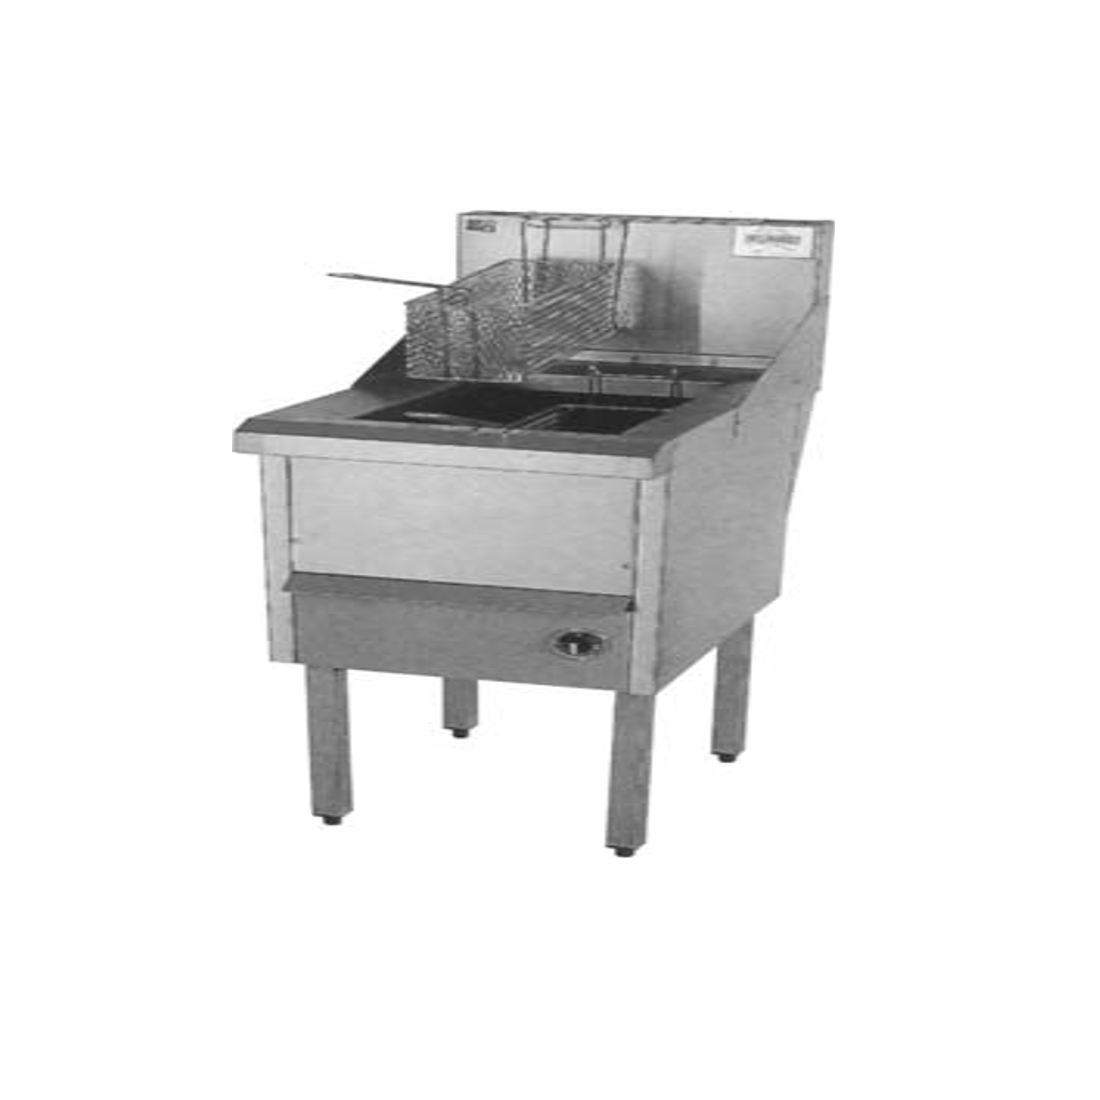 Gas Fish and Chips Fryer Single Fryer -  WFS-1/18